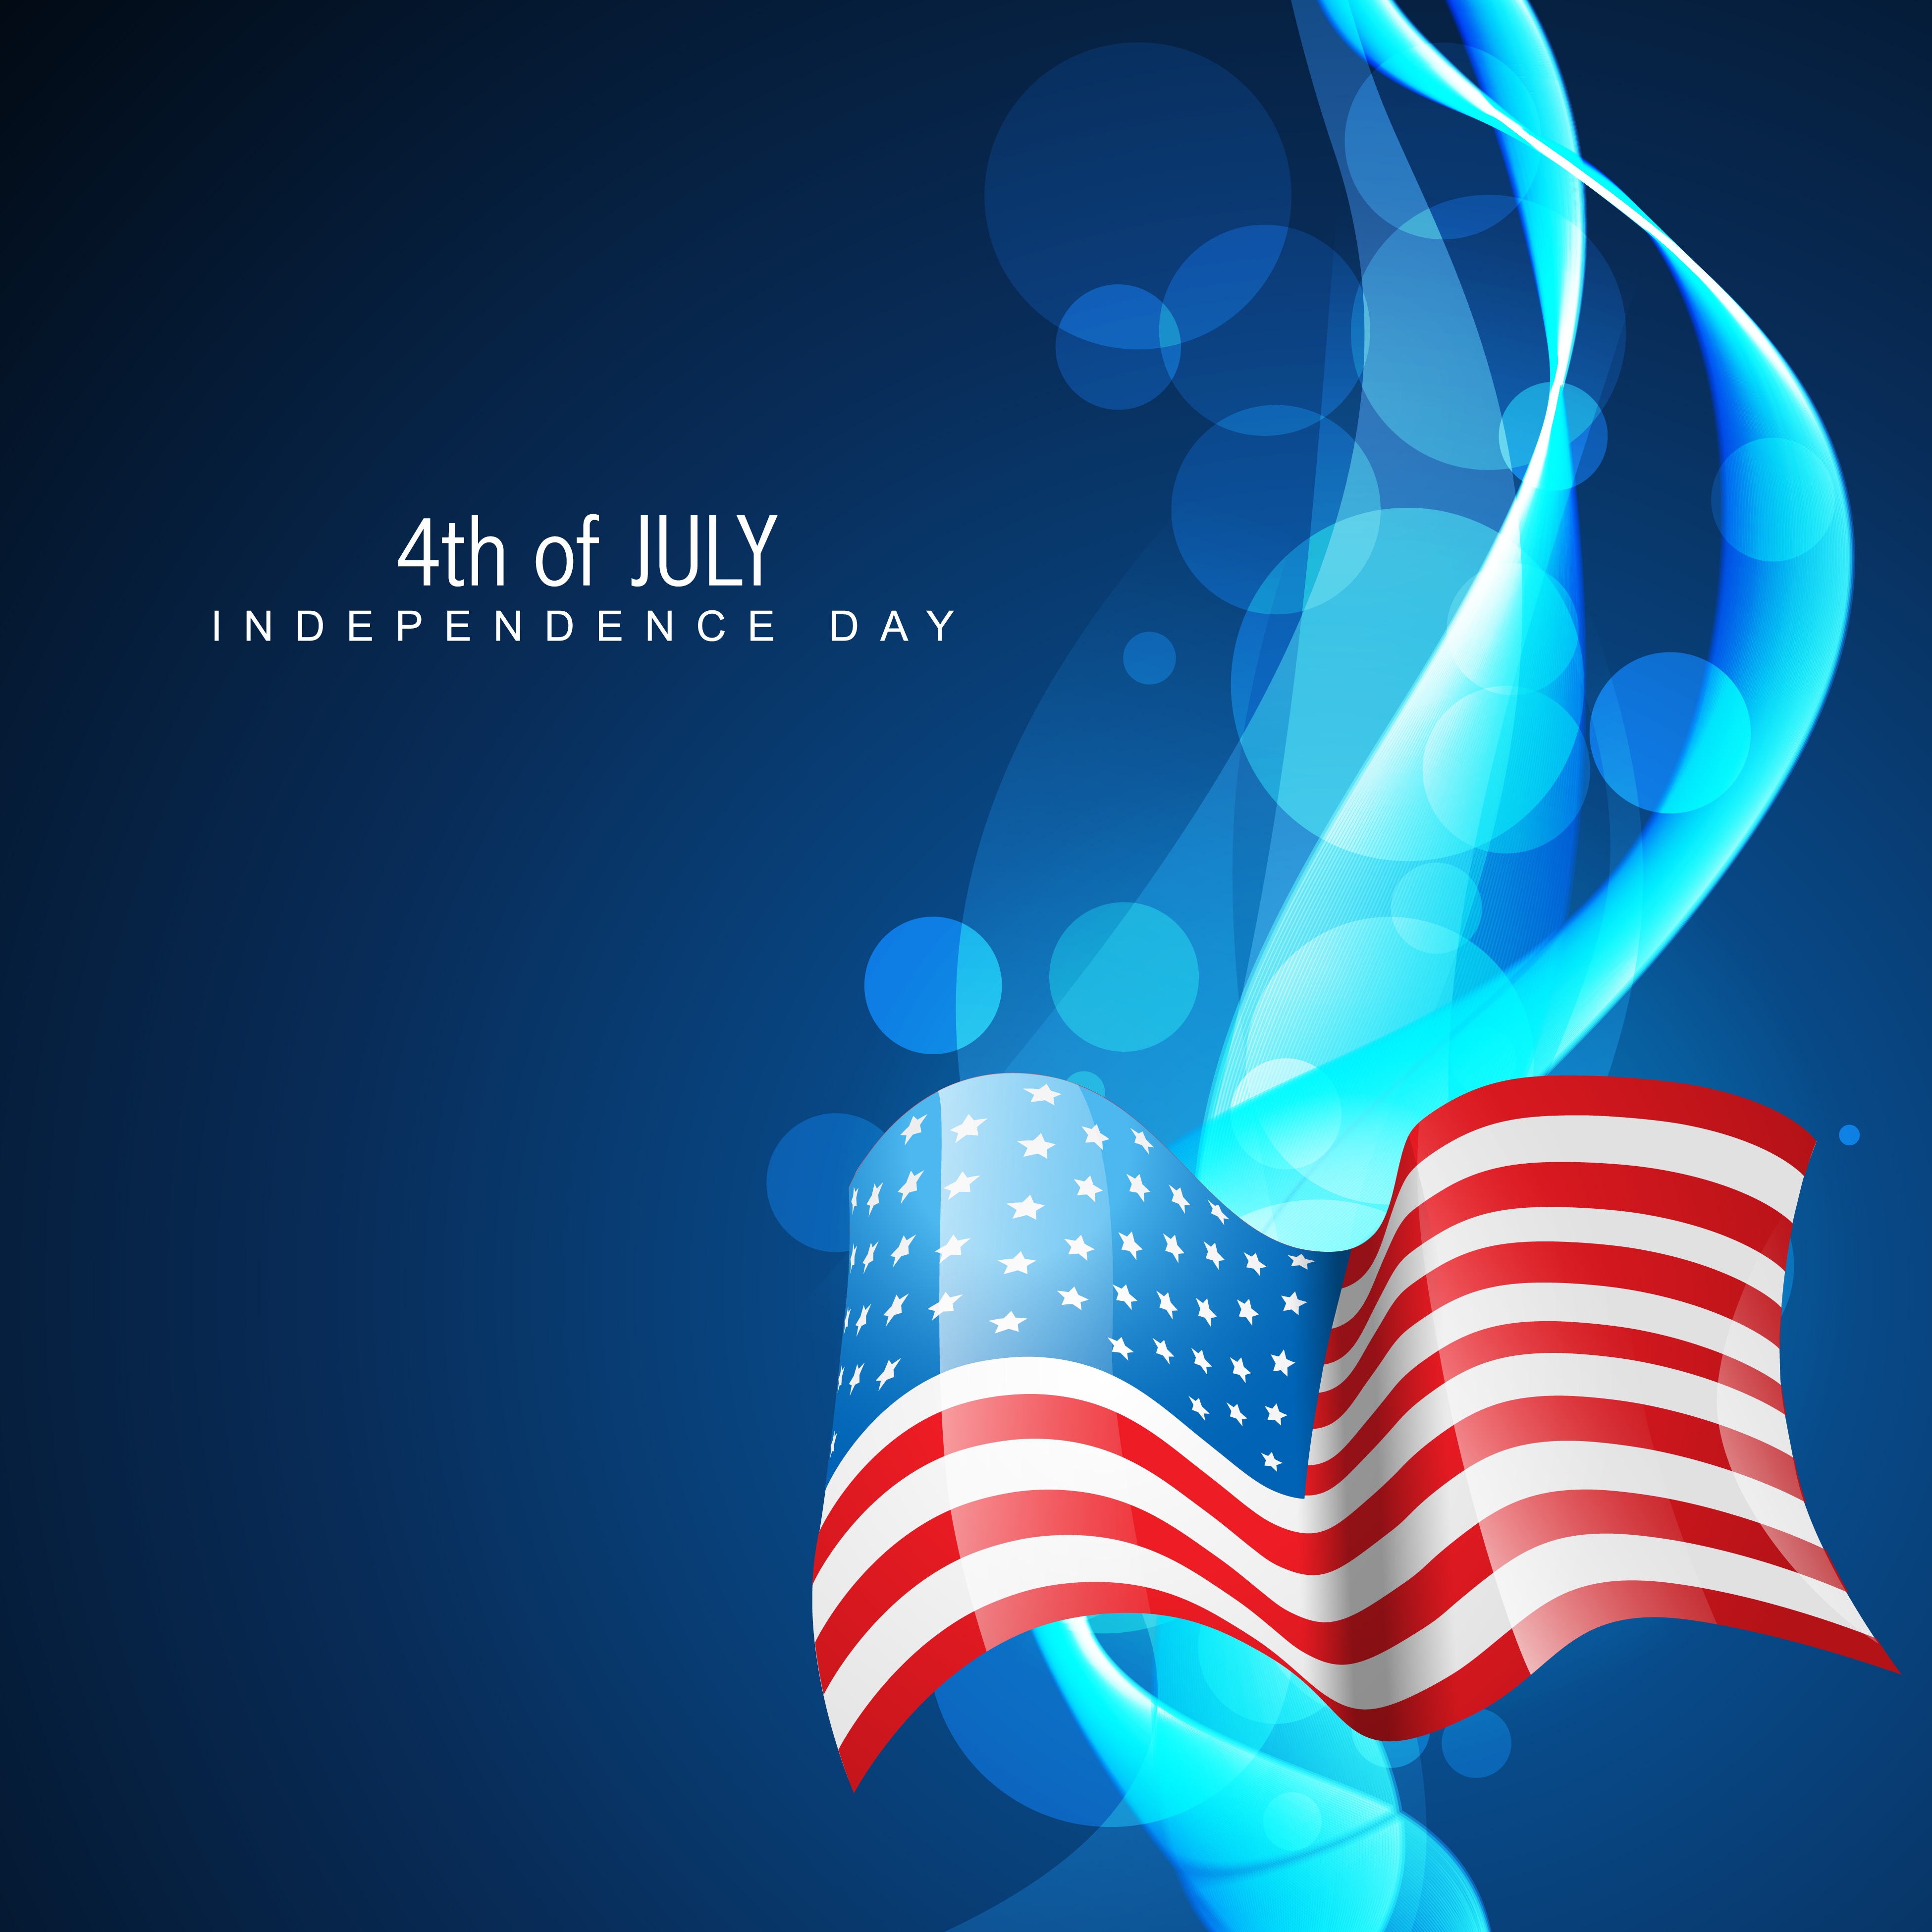 Independence Day: Independence Day 4th Of July